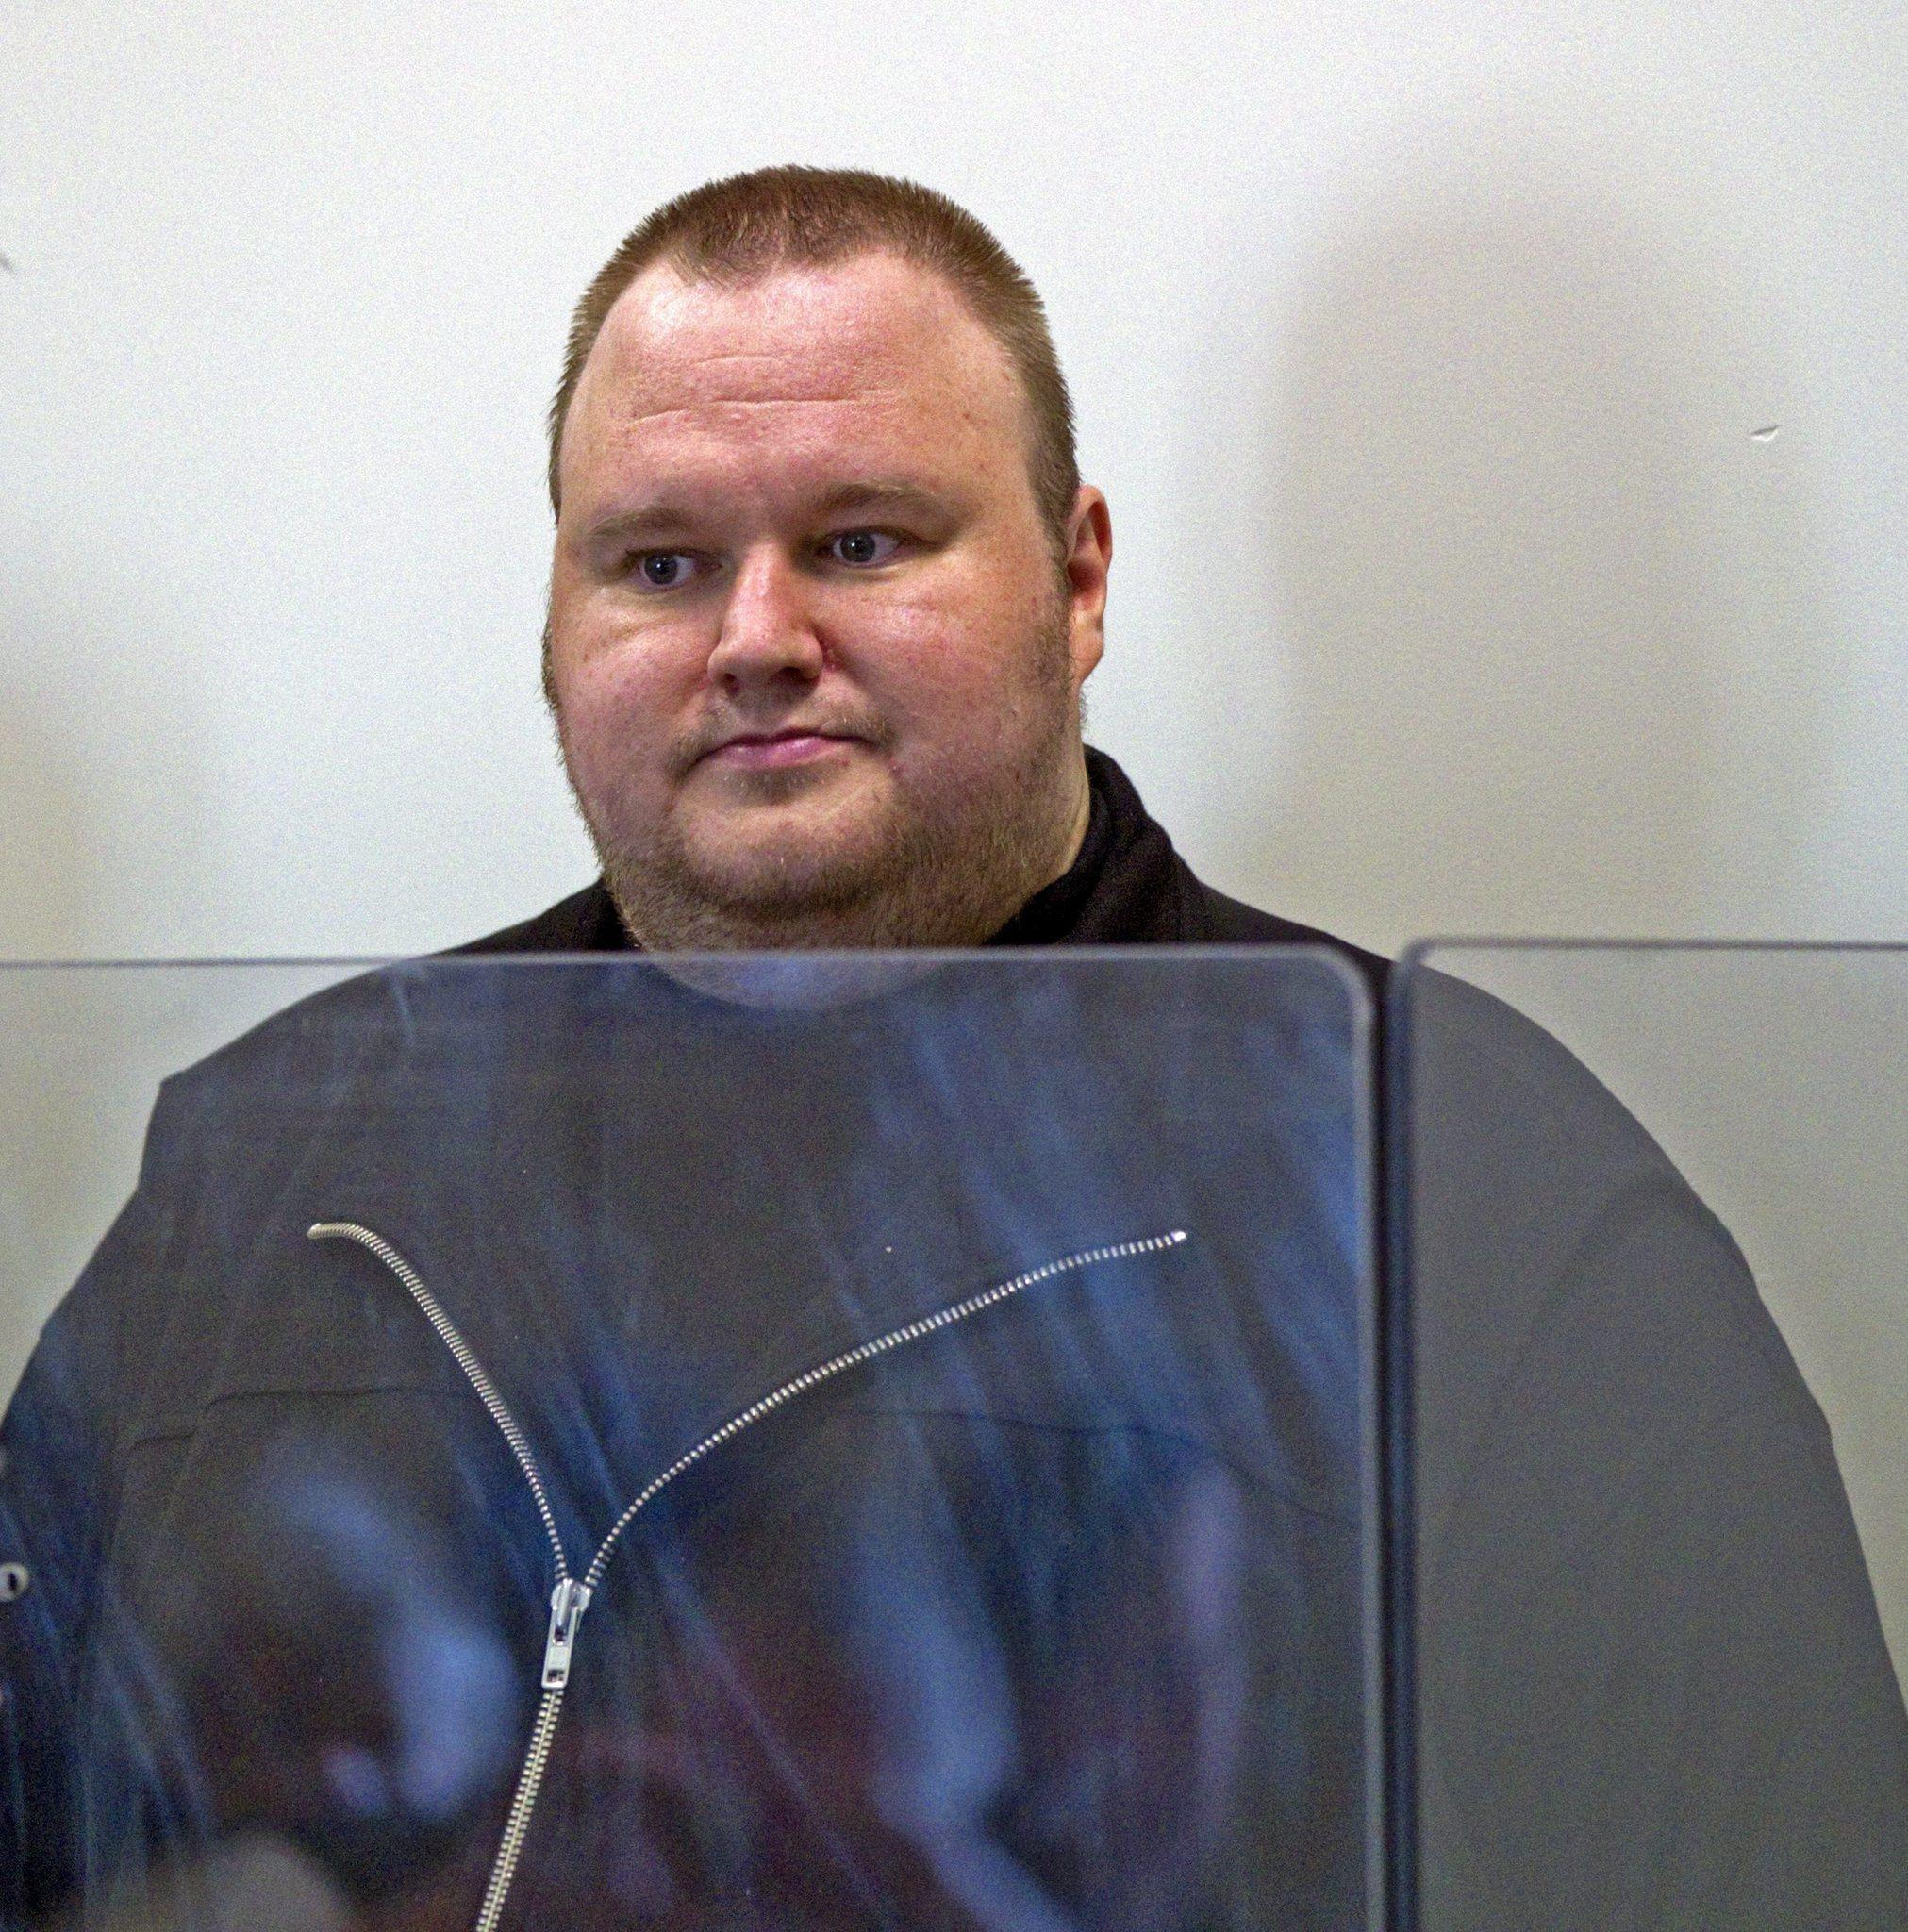 German national Kim Schmitz, also known as Kim Dotcom, of Megaupload in 2012.